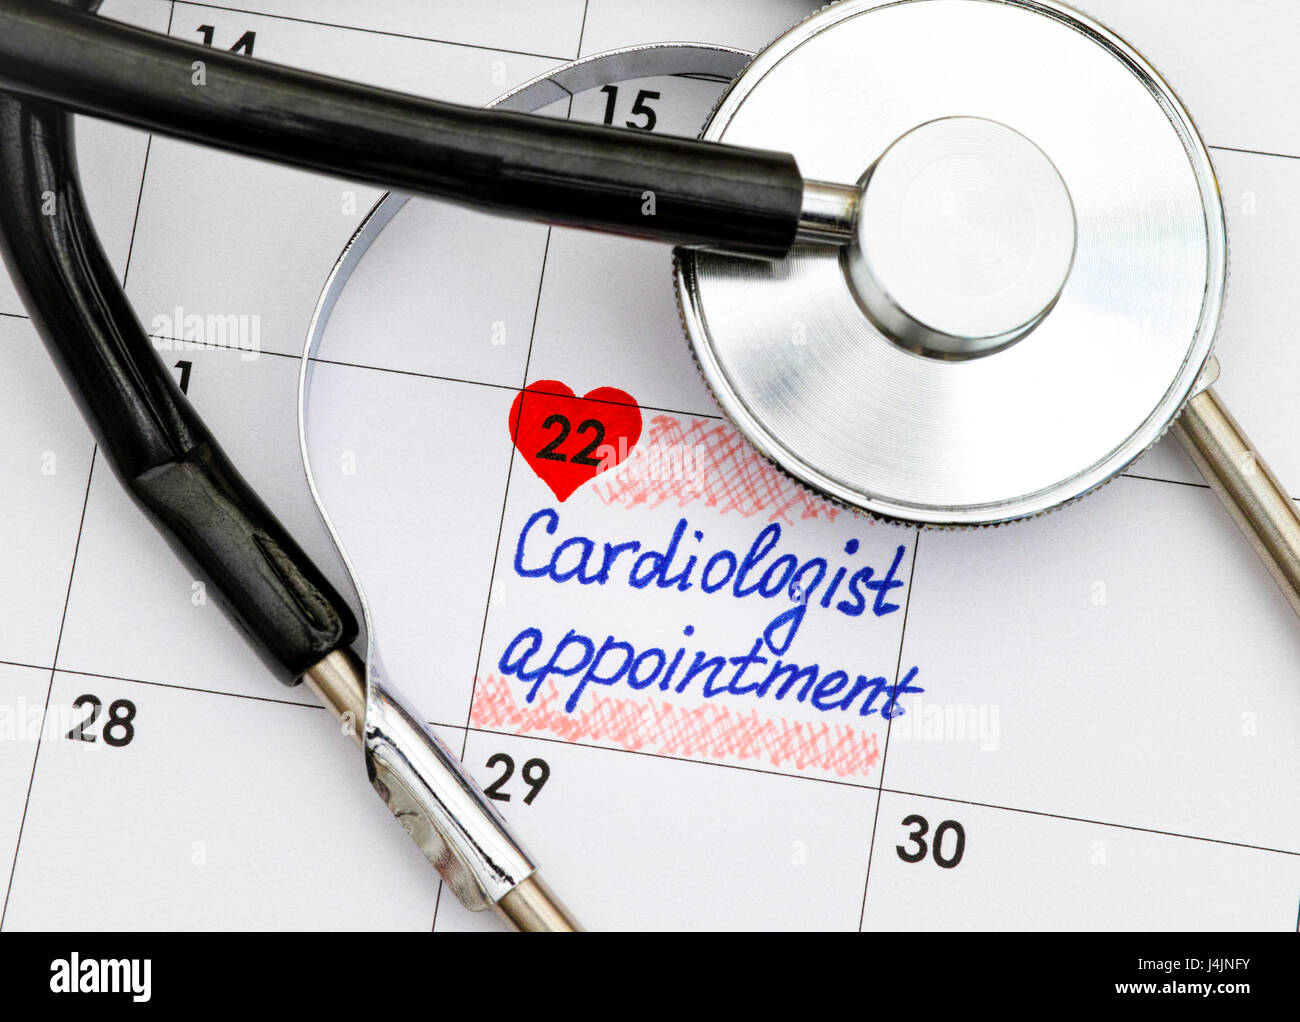 Reminder Cardiologist Appointment in calendar with black stethoscope. - Stock Image